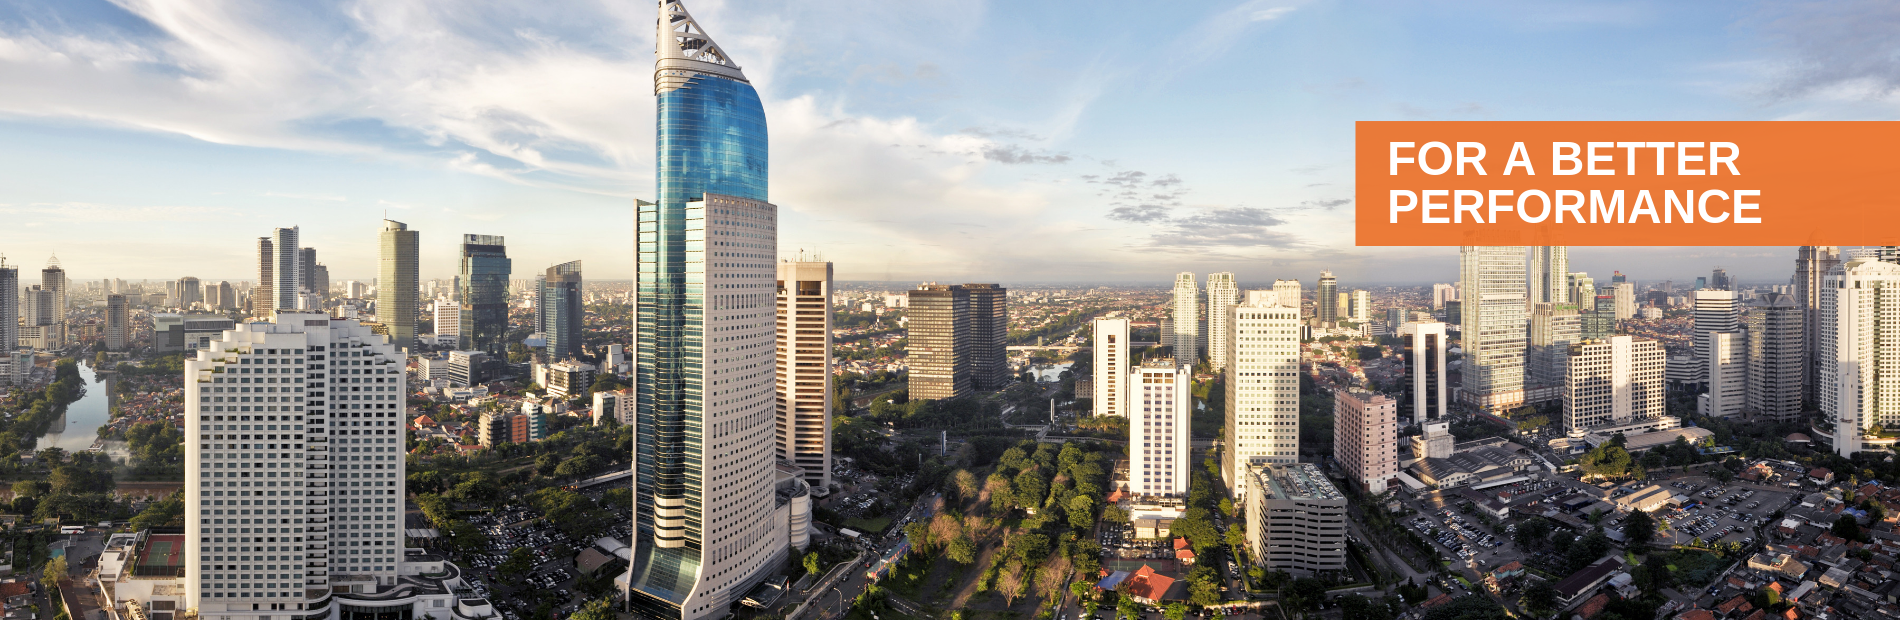 ATALIAN Global Services is present in Indonesia